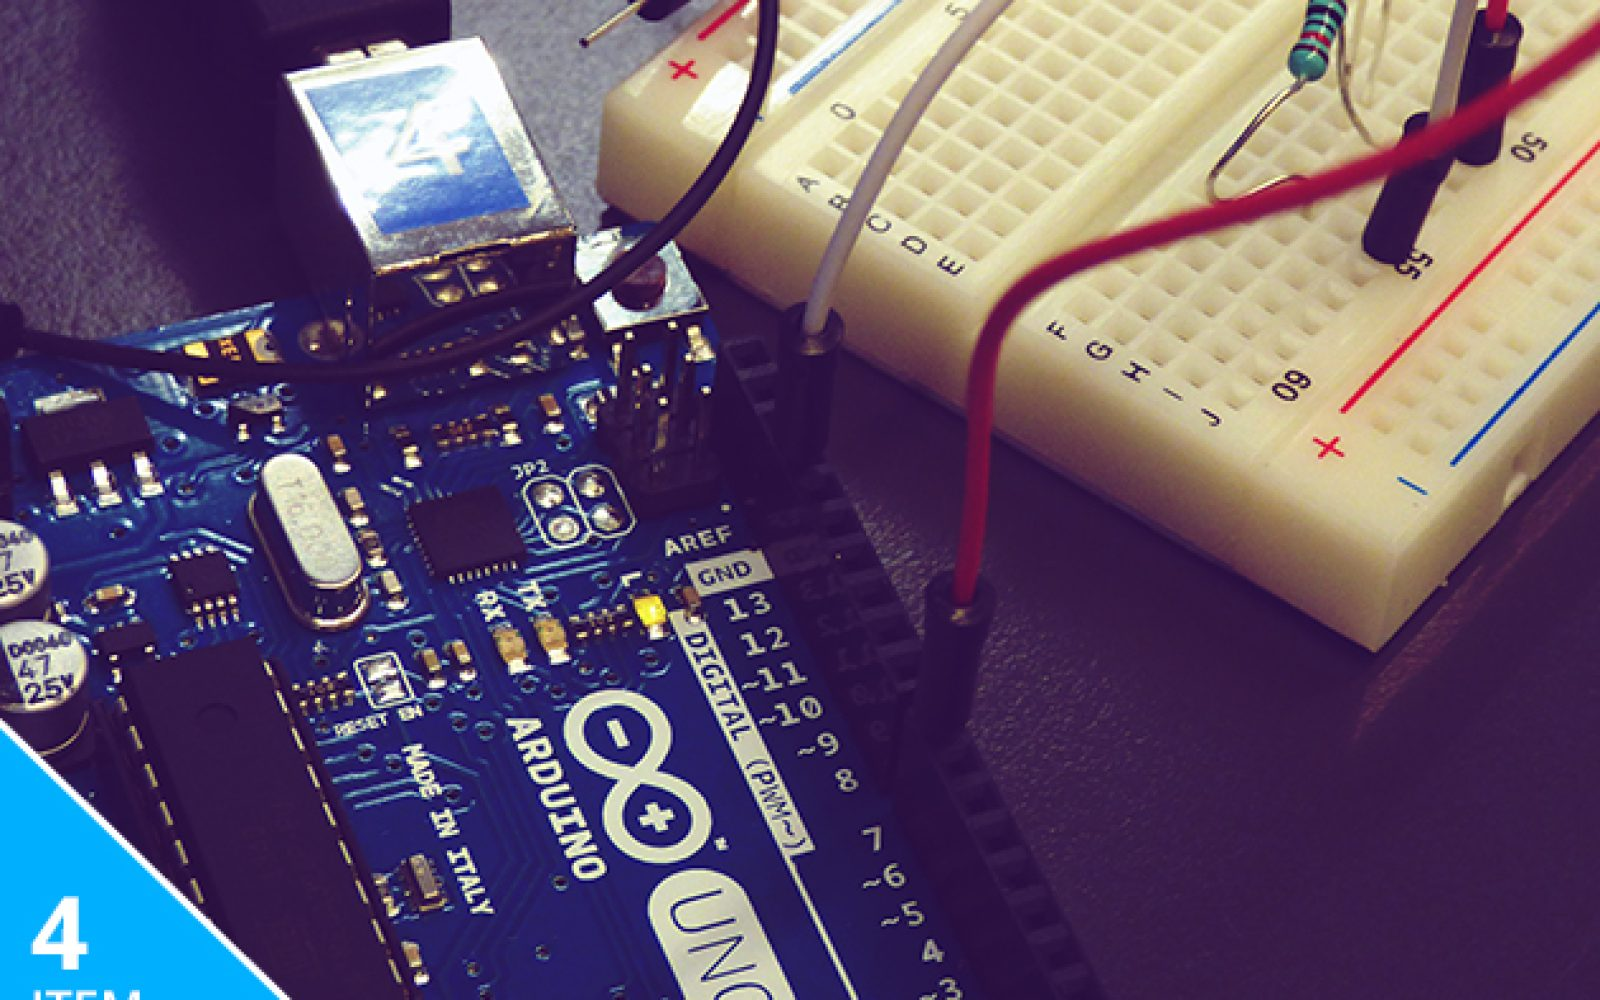 Complete arduino starter kit course bundle shipped